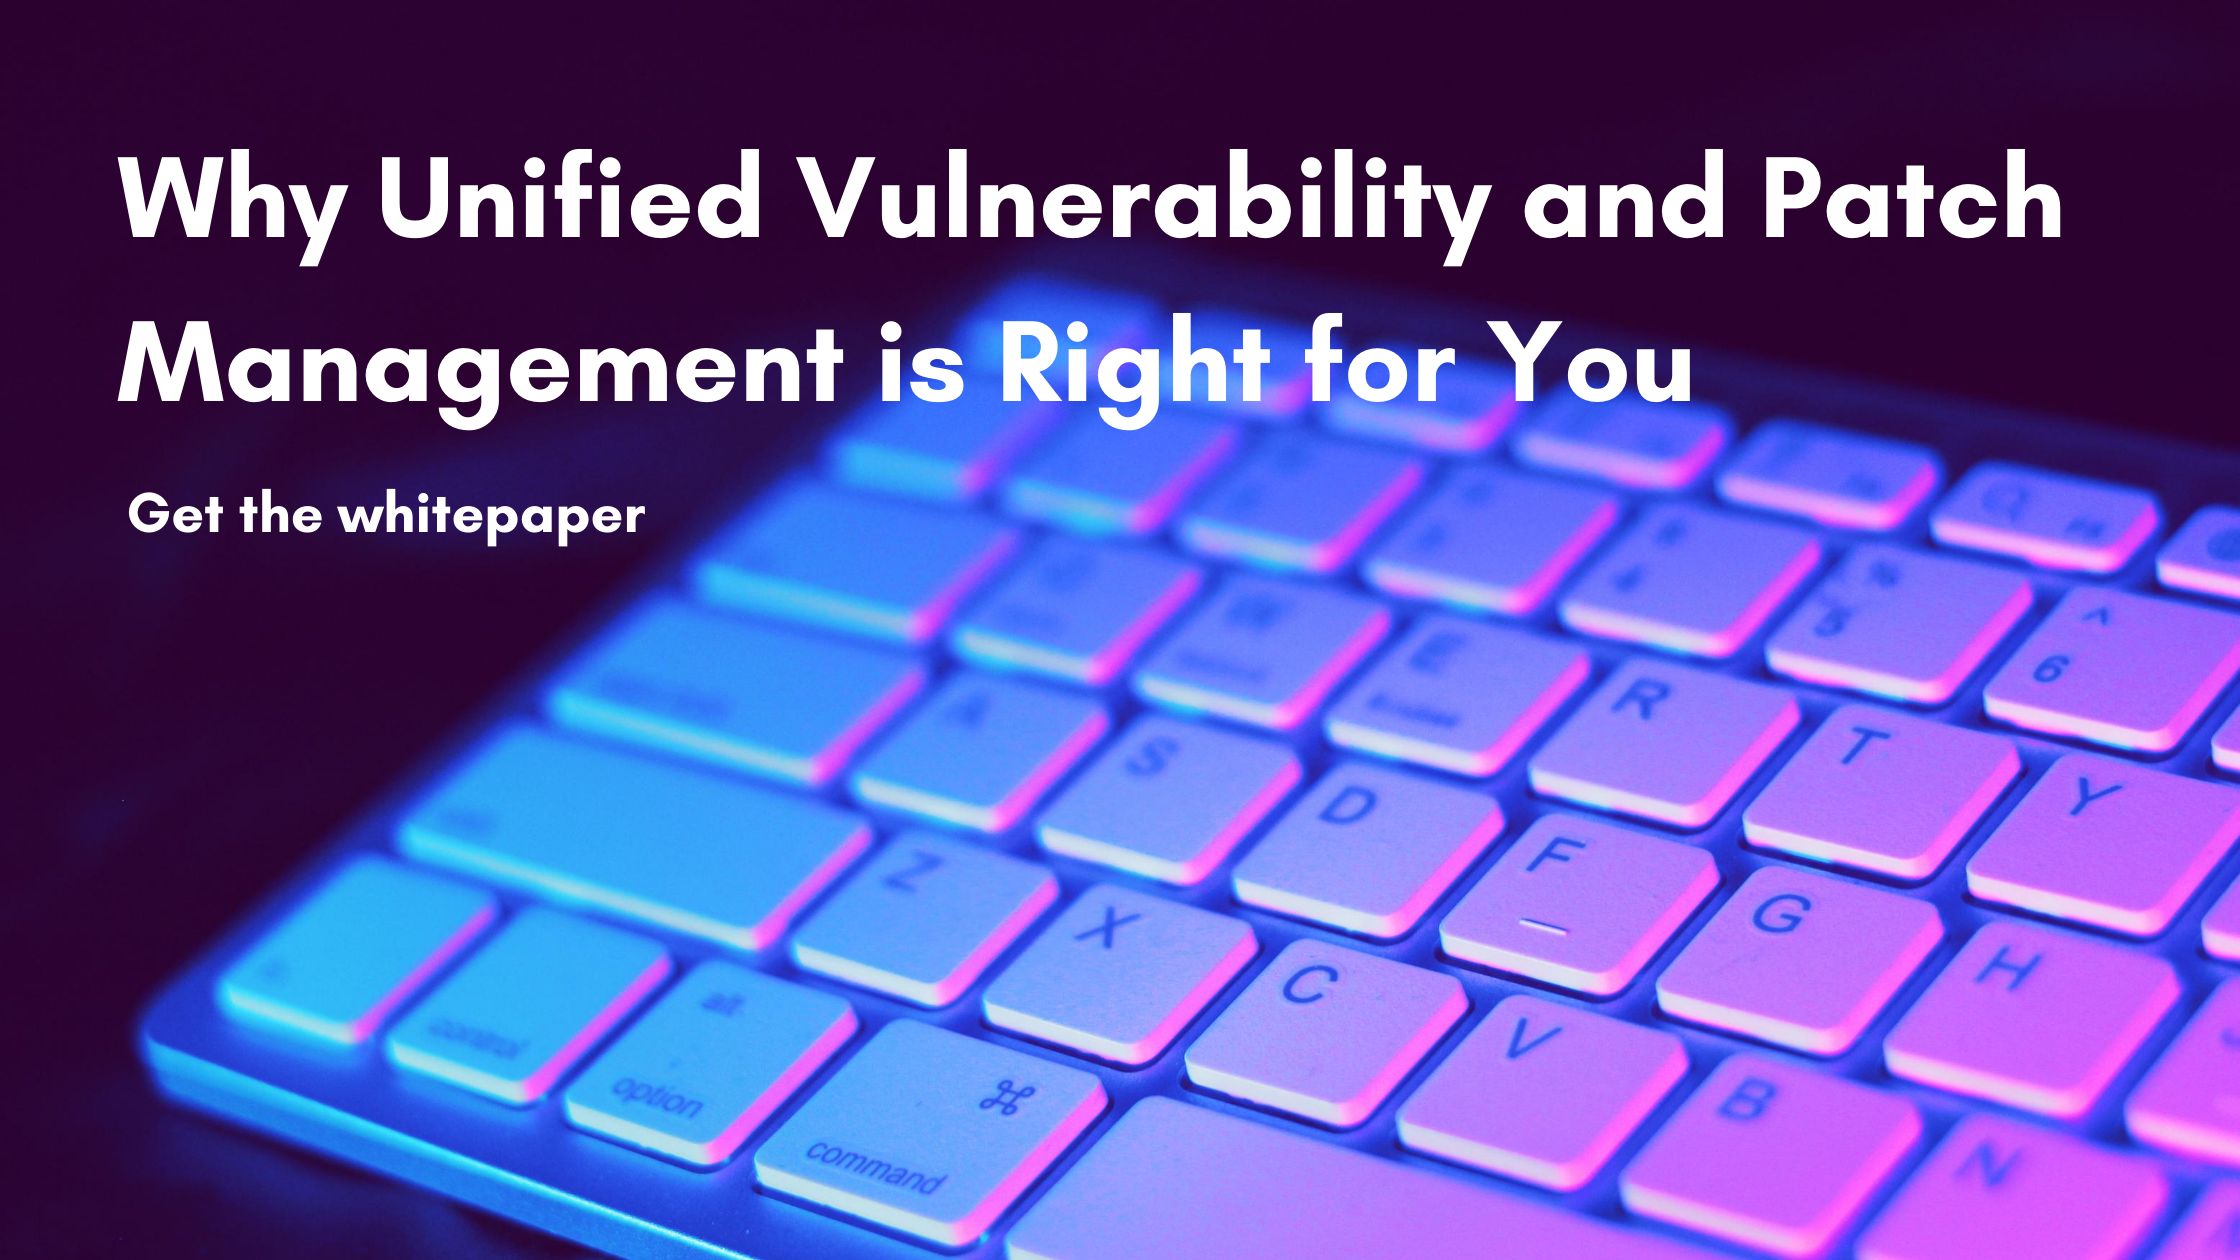 Why Unified Vulnerability and Patch Management is Right for You